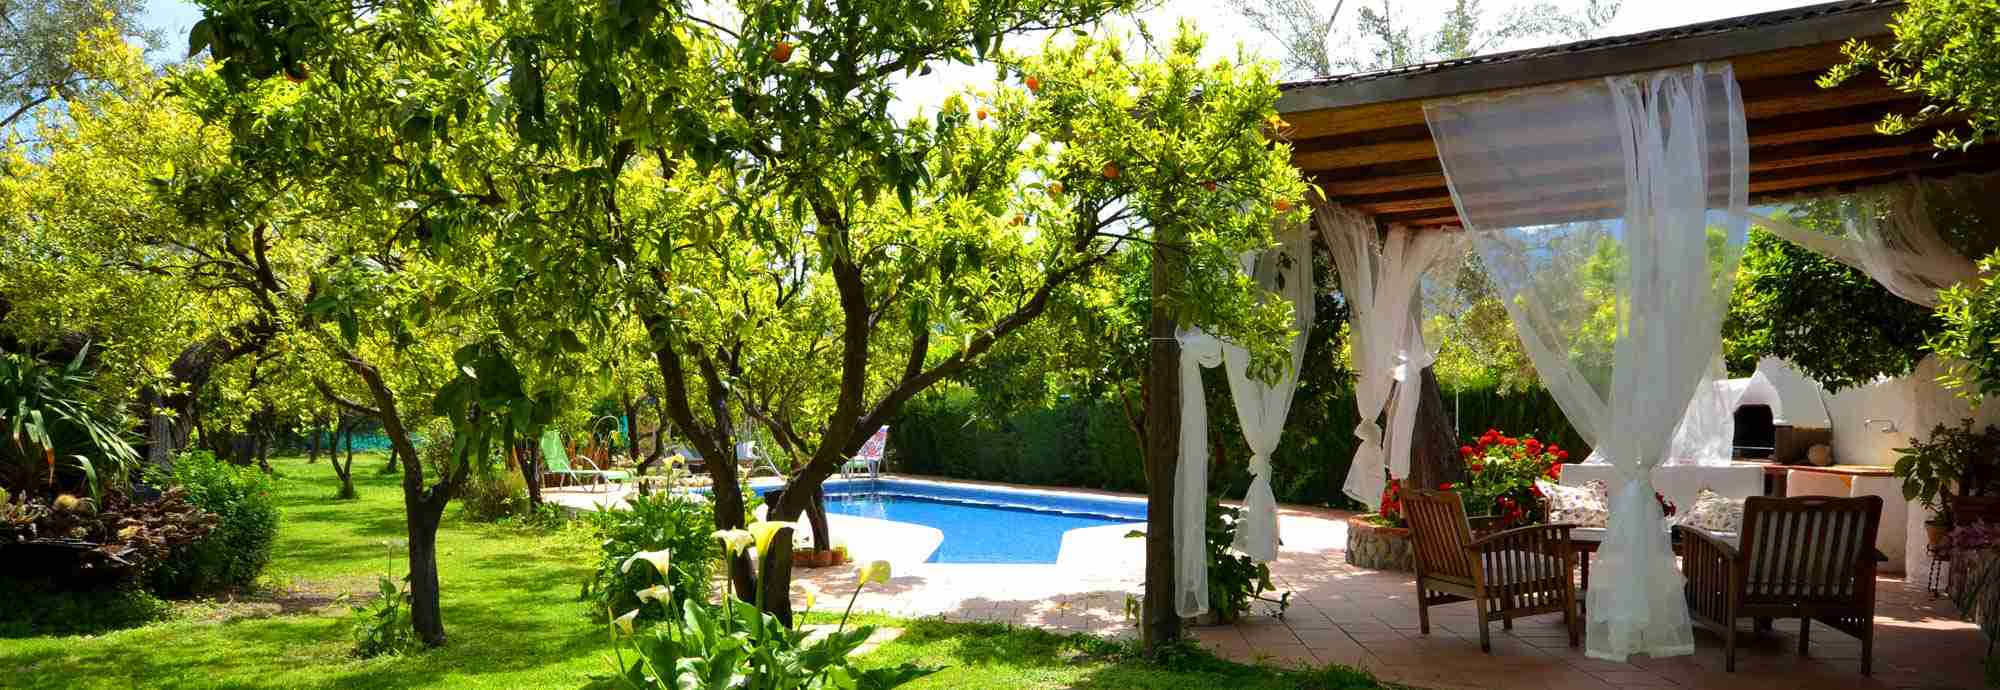 2 bedroom villa with private pool & gardens in Andalucia, Spain